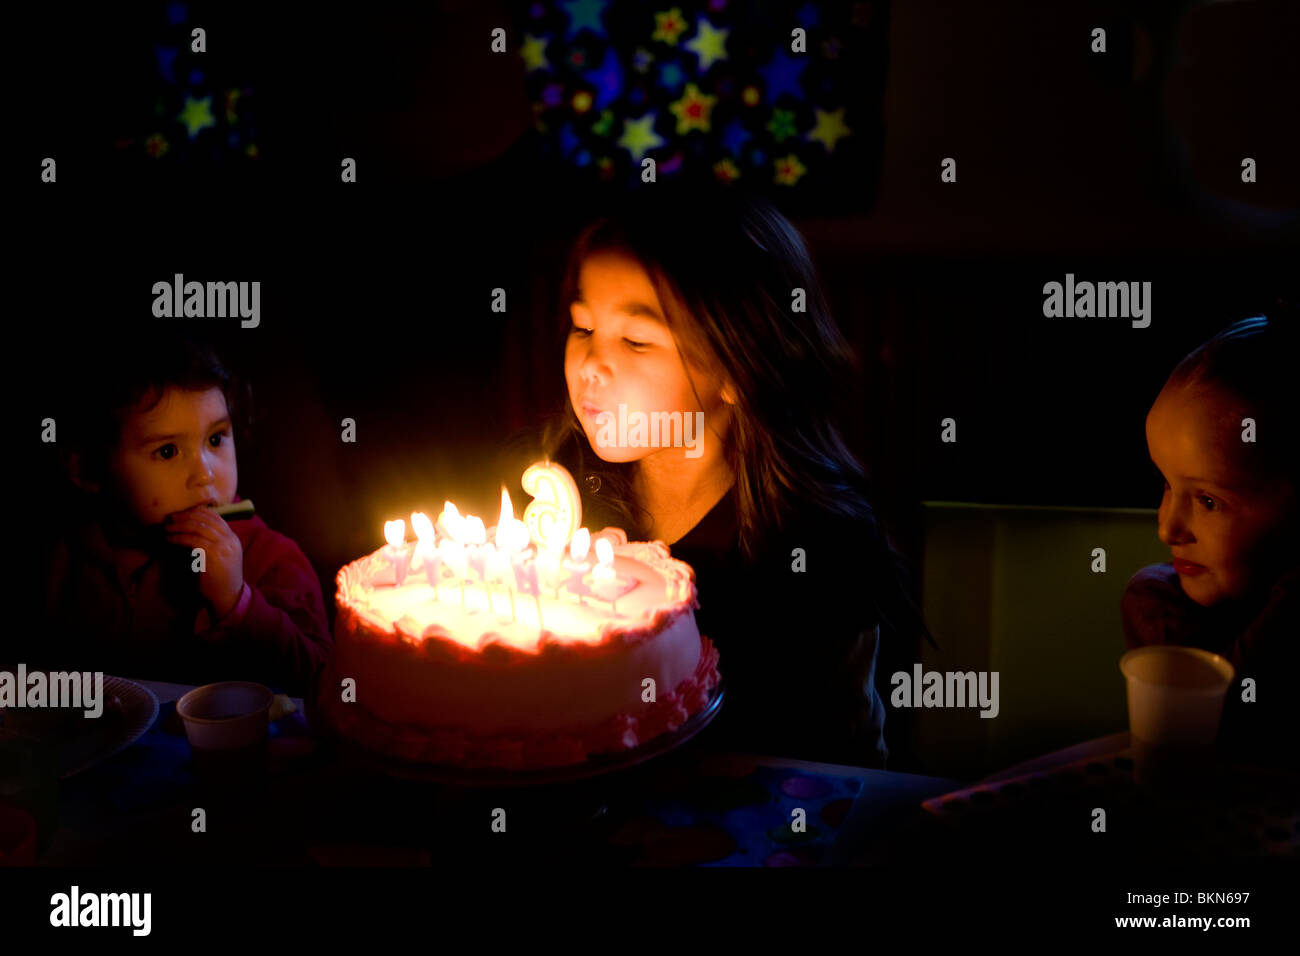 A Young Half Thai Girl Celebrates Her 6th Birthday By Blowing Out